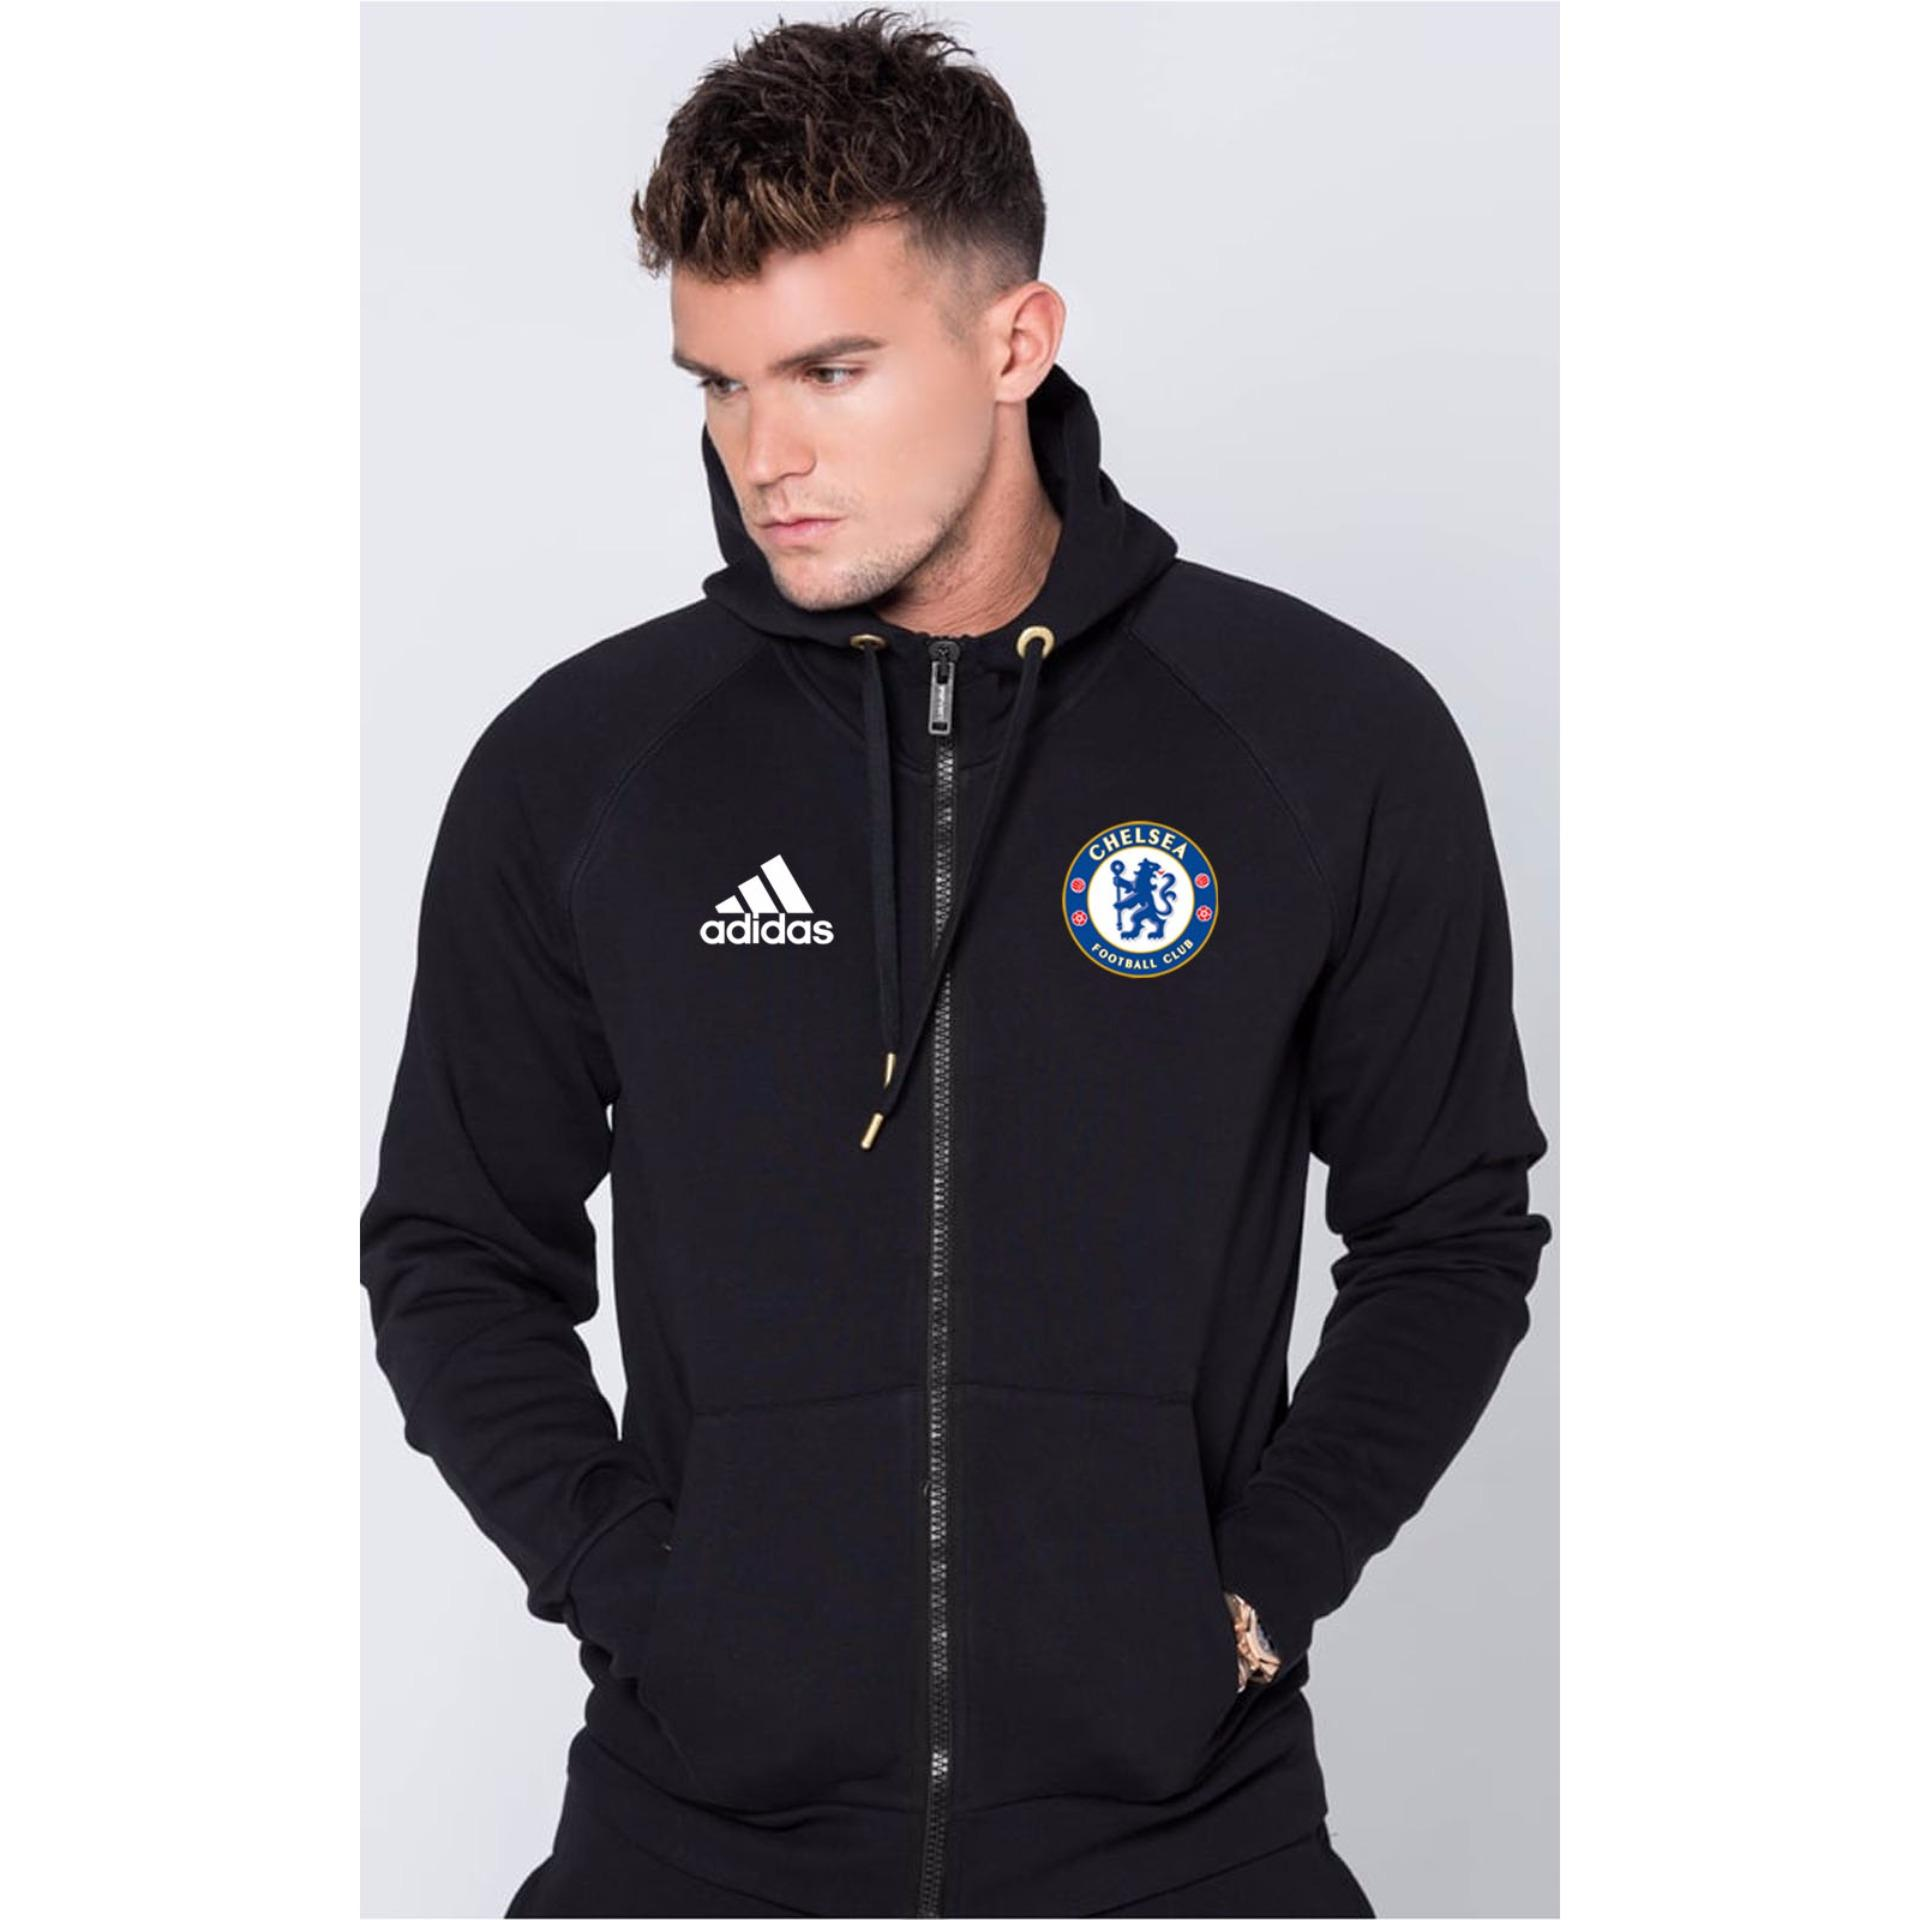 Harga Hemat Just Cloth Jaket Zipper The Blues Chelsea Hitam